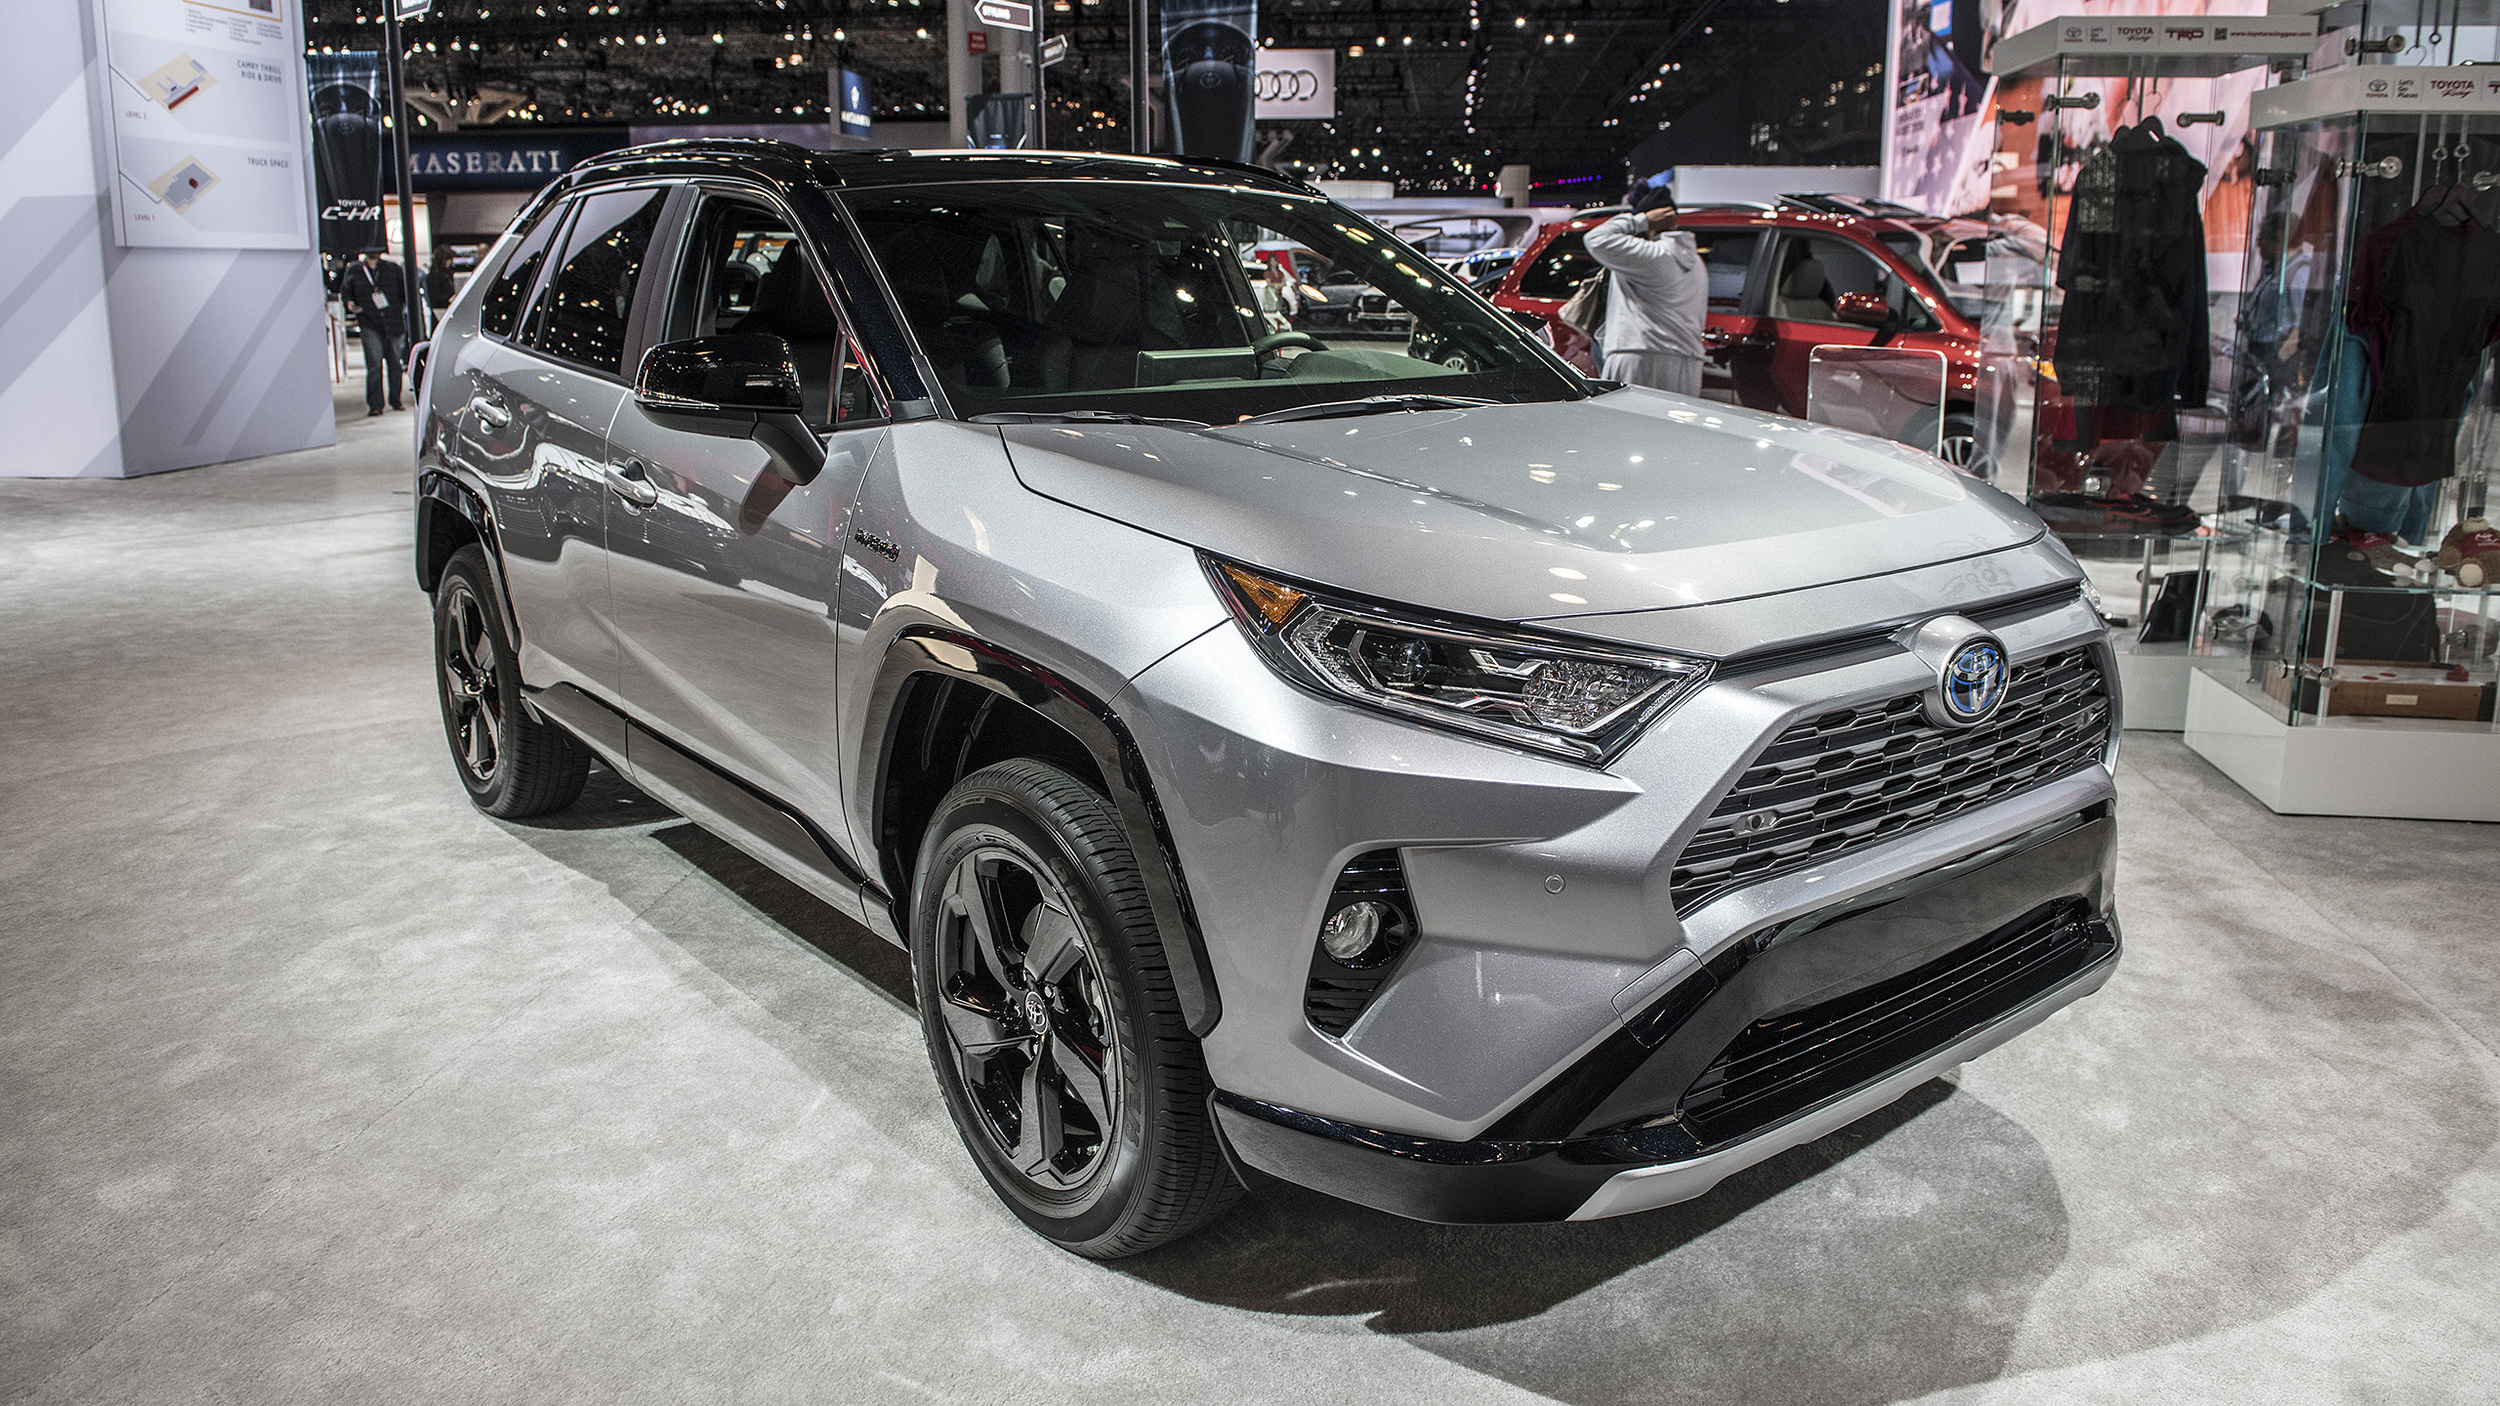 2019 toyota rav4 hybrid new york 2018 autoblog. Black Bedroom Furniture Sets. Home Design Ideas